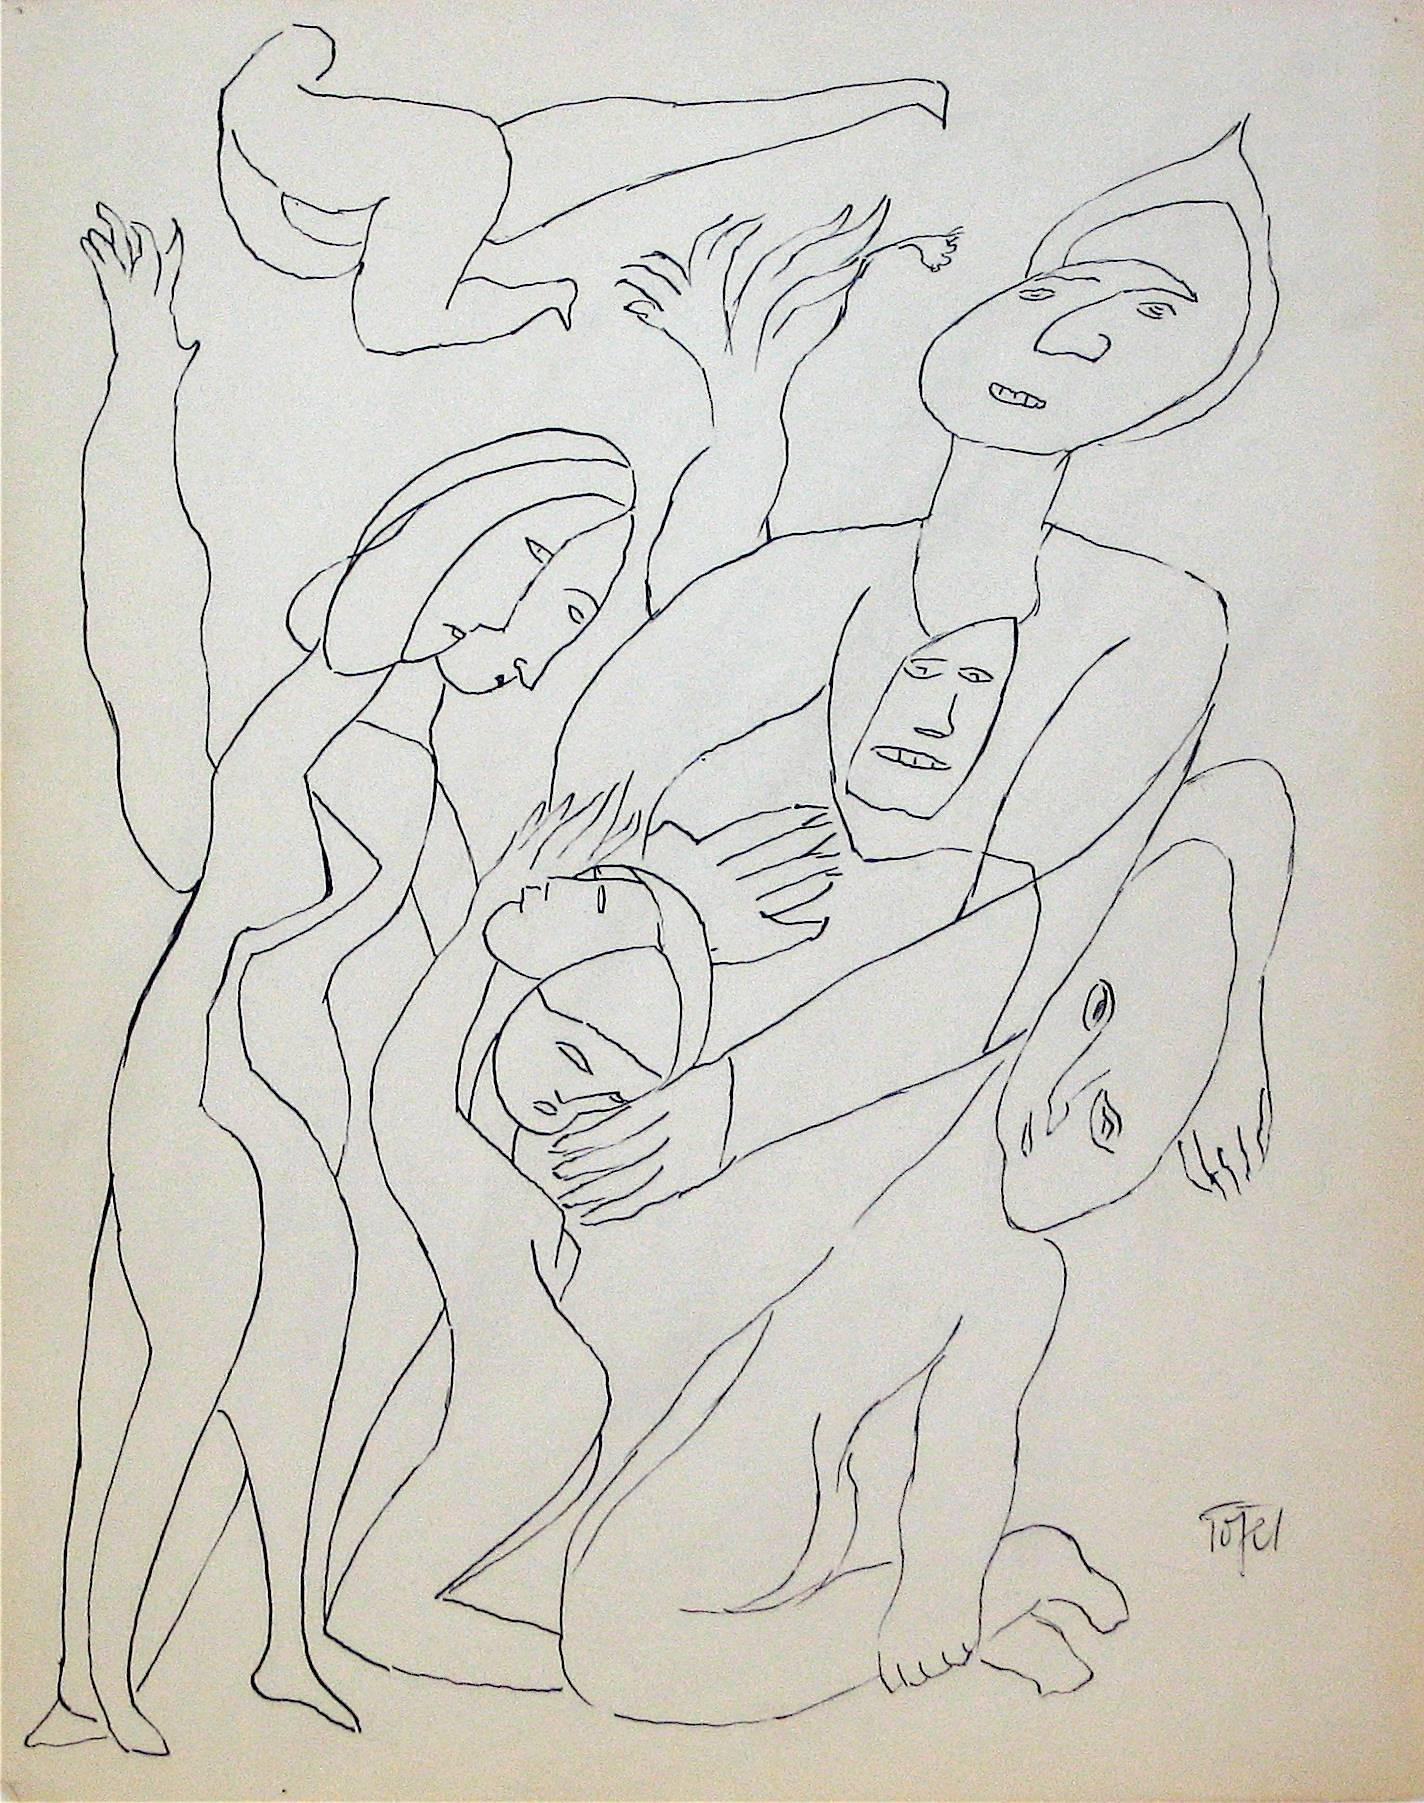 Figurative Line Drawing in Ink, Early 20th Century